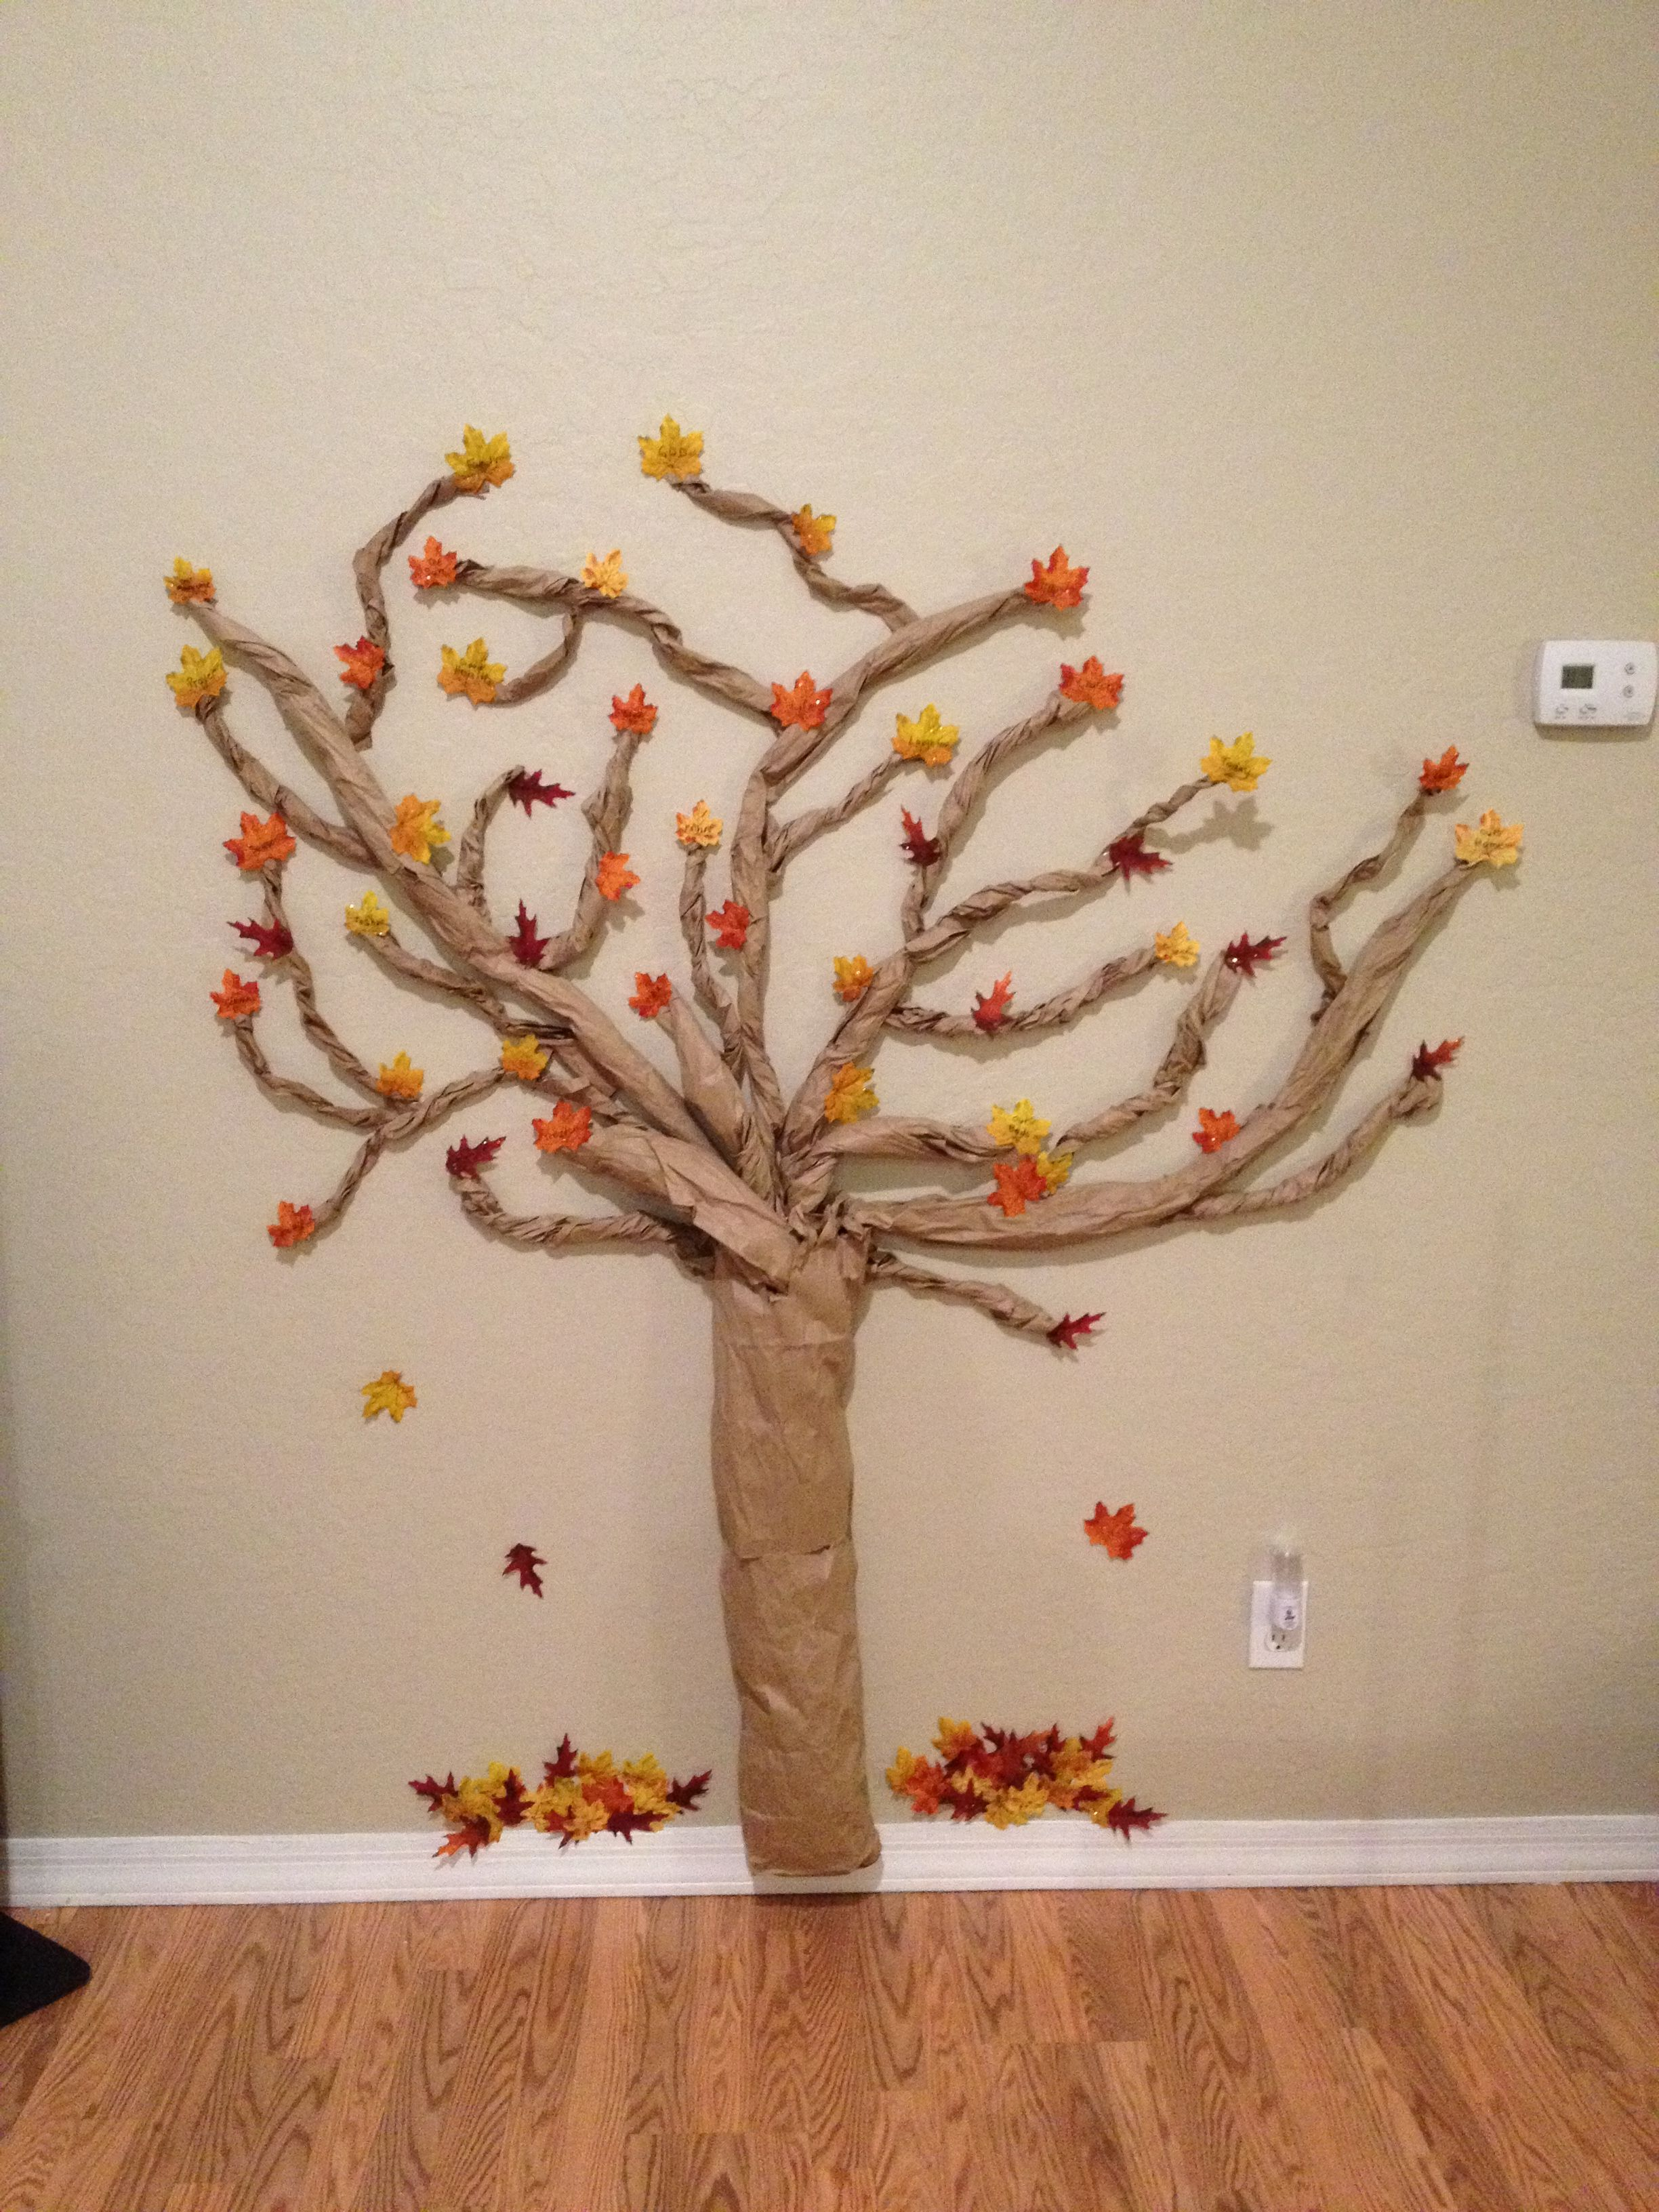 Every Year My Kids And I Make A Tree Out Of Paper Bags And Fake Fall Leaves On The The Leaves We Write Childrens Church Crafts Thanksgiving Tree Church Crafts